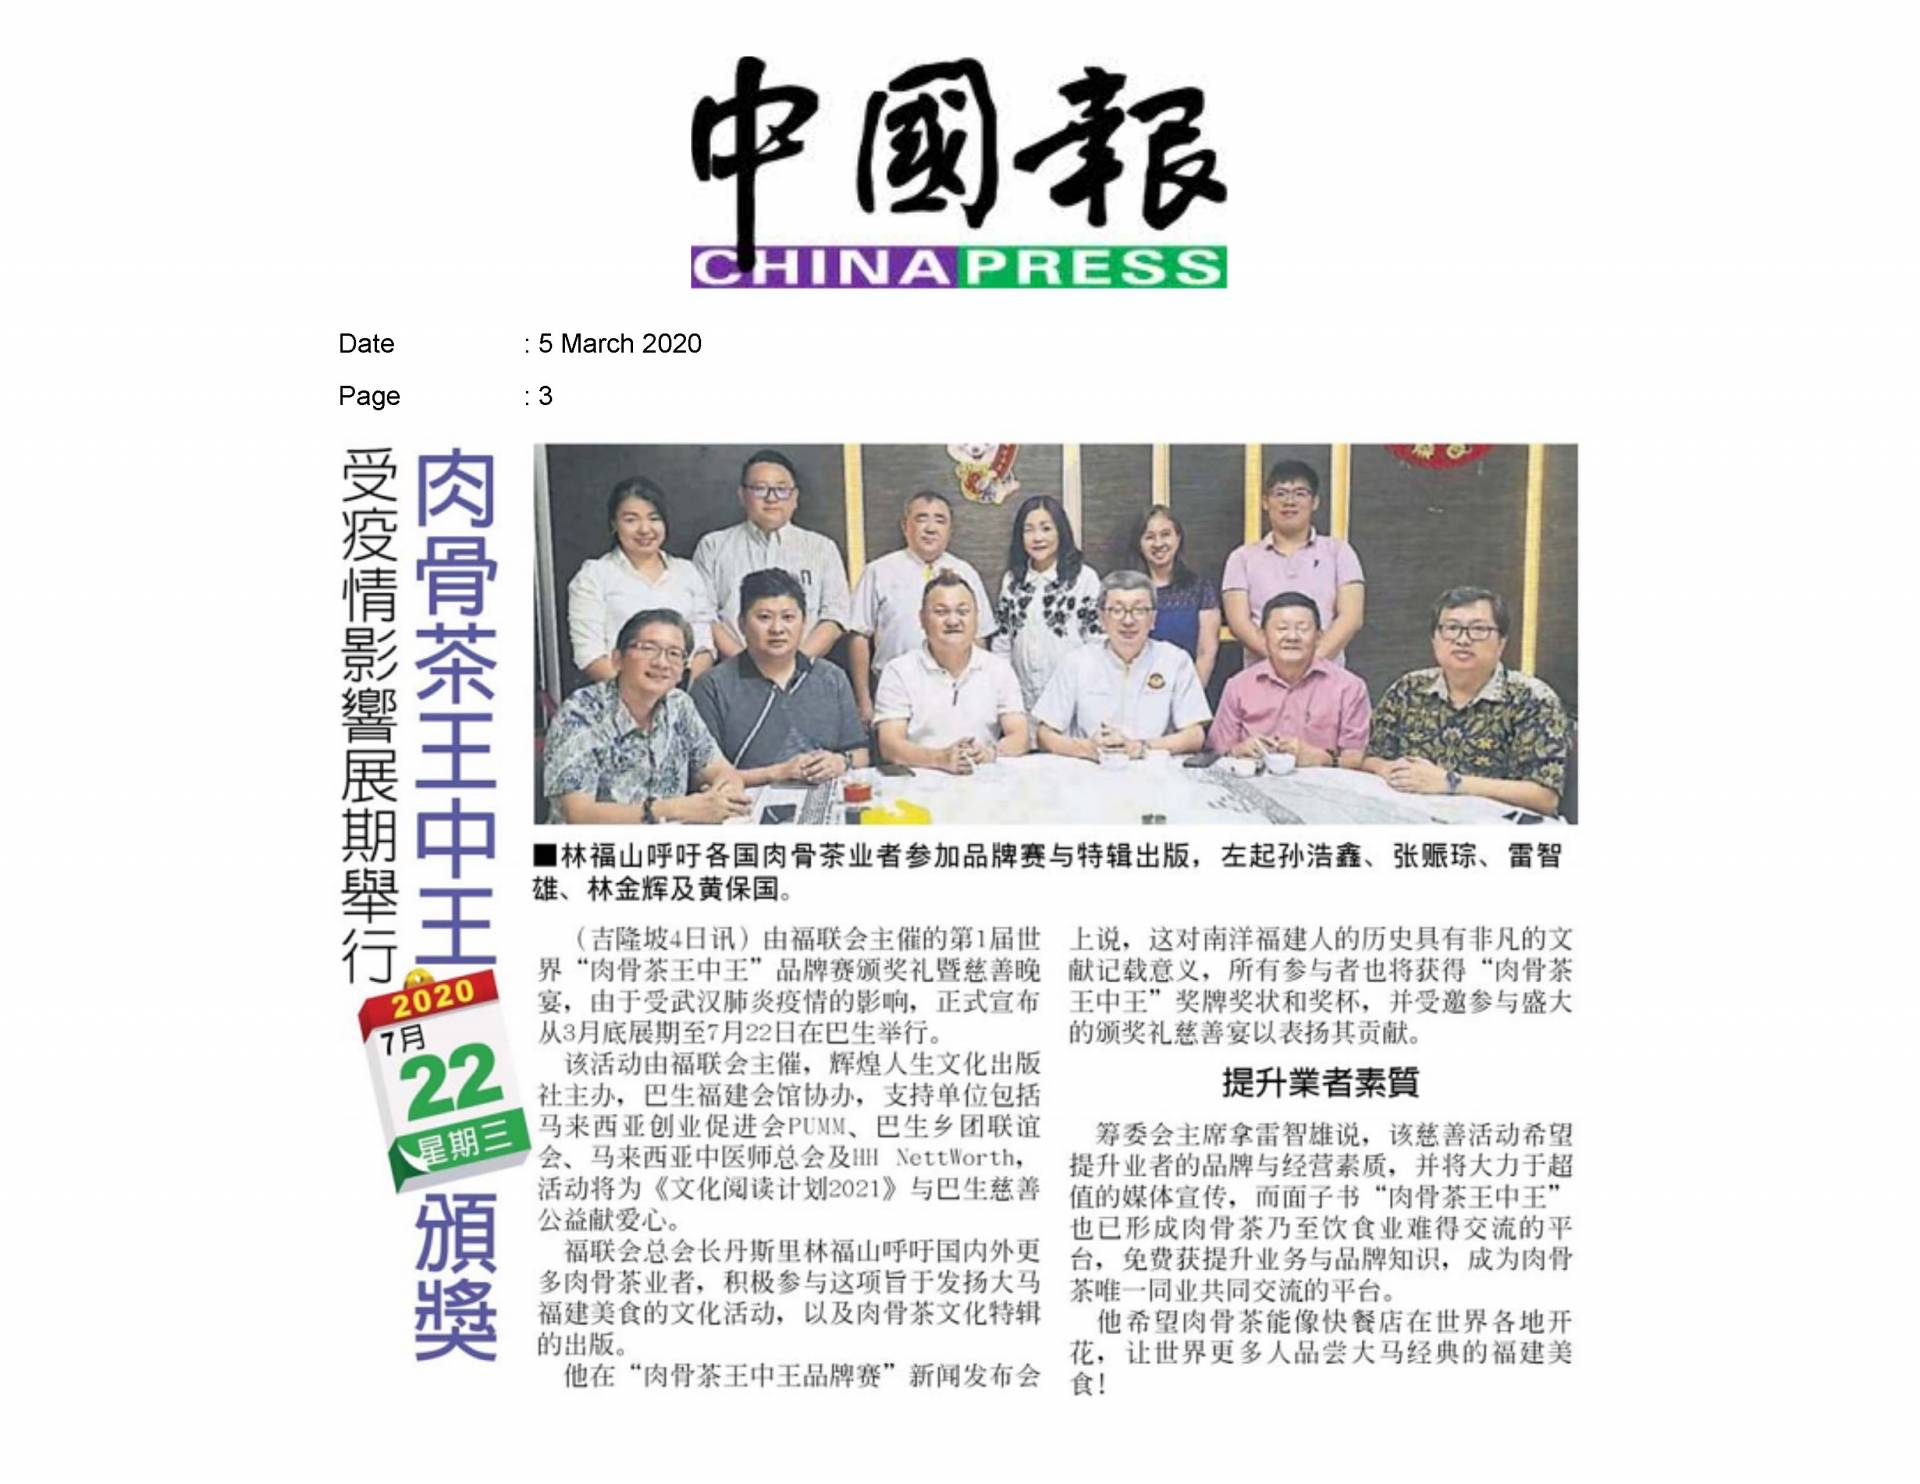 2020.03.05 China Press - Bak Kut Teh competition award ceremony in July